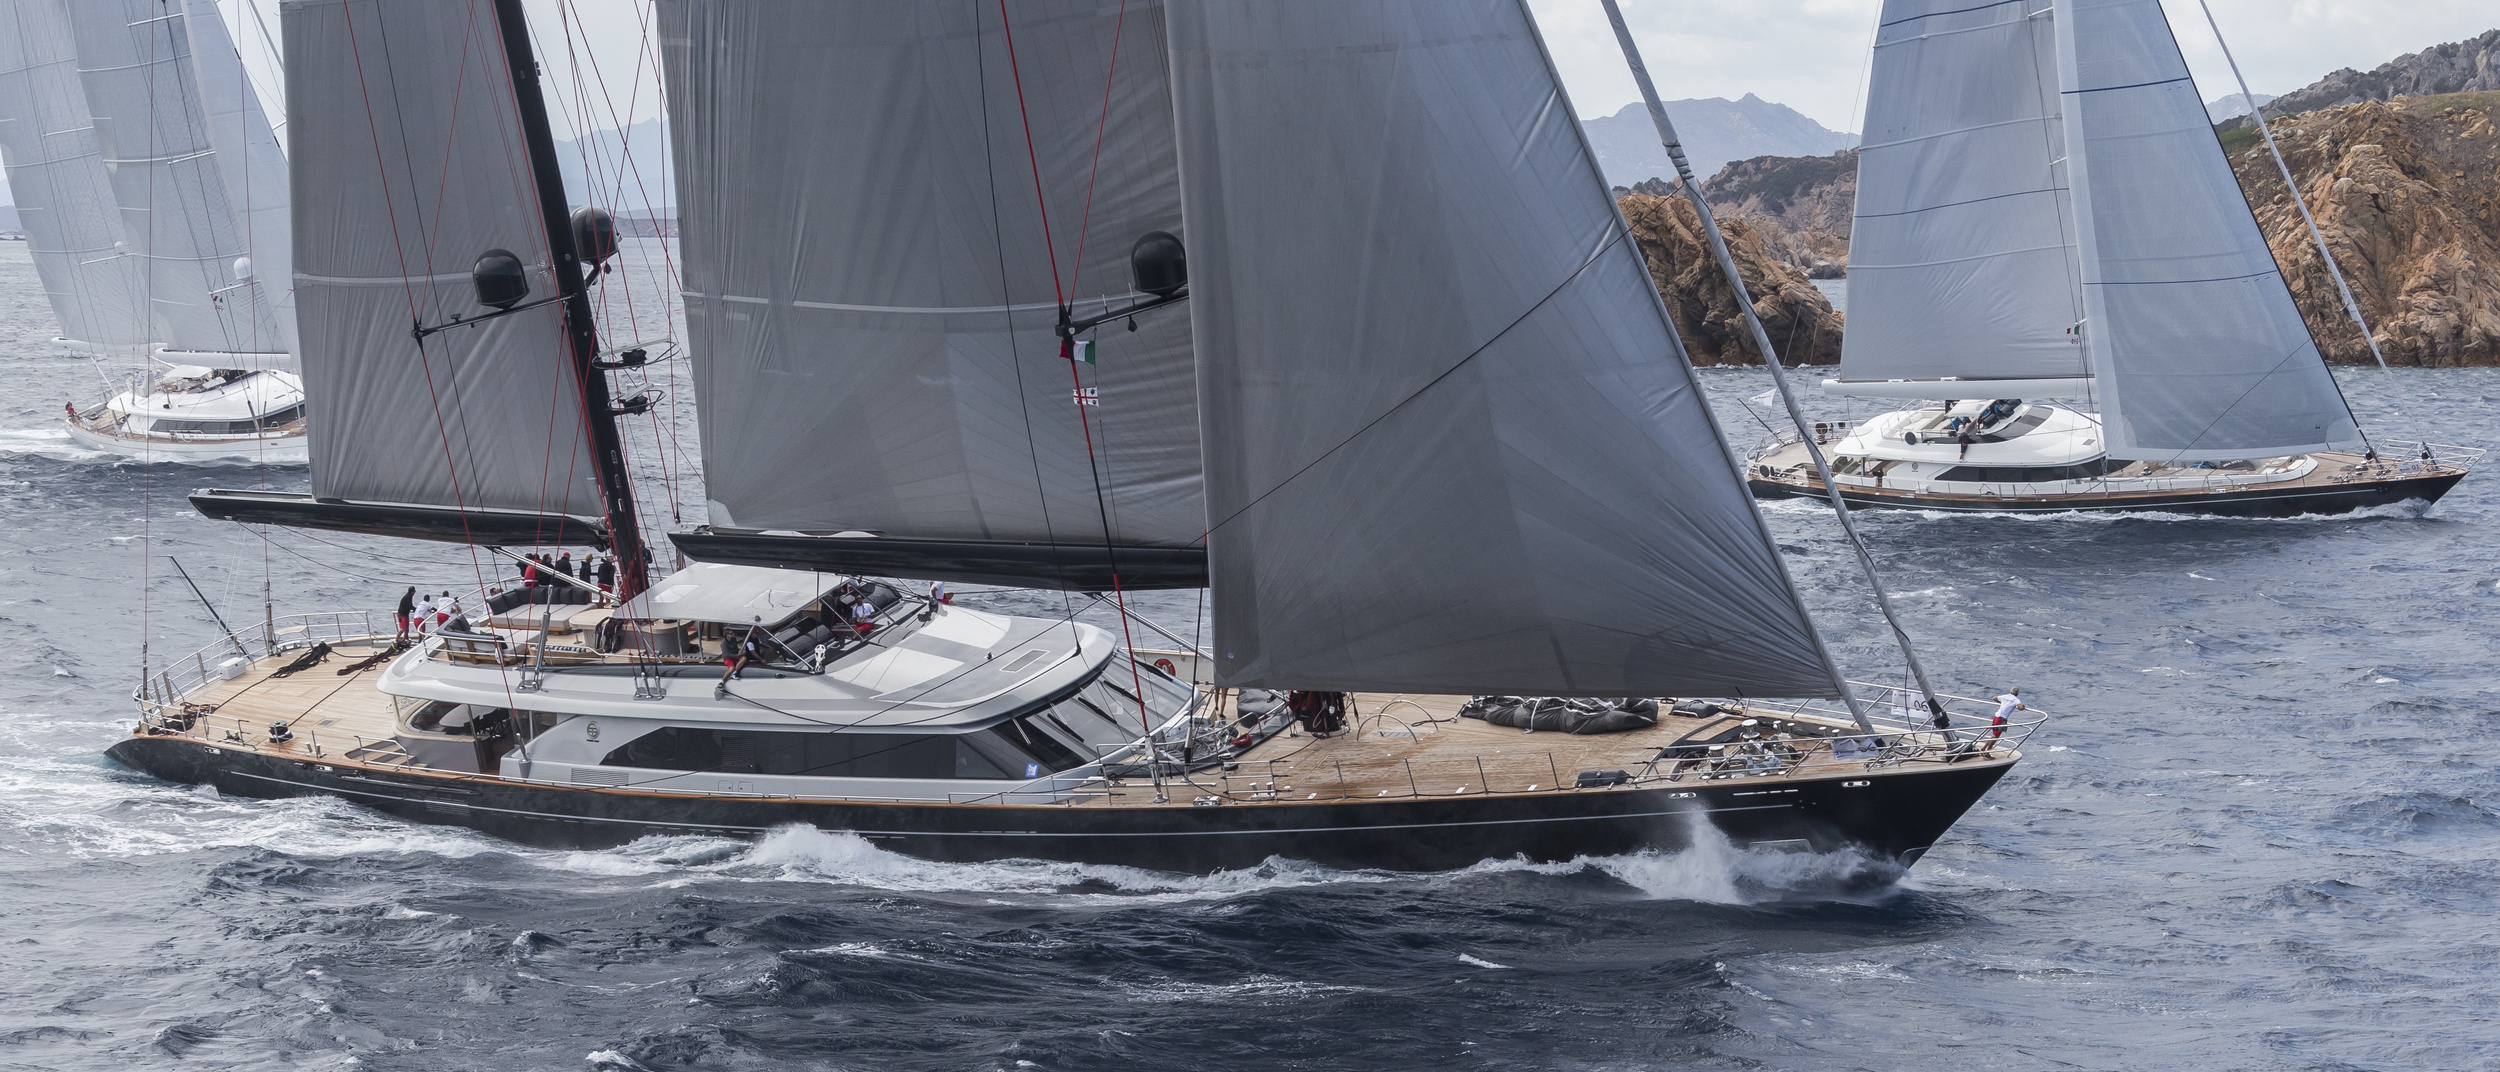 Sailing Superyachts At The Sailing Regatta Event